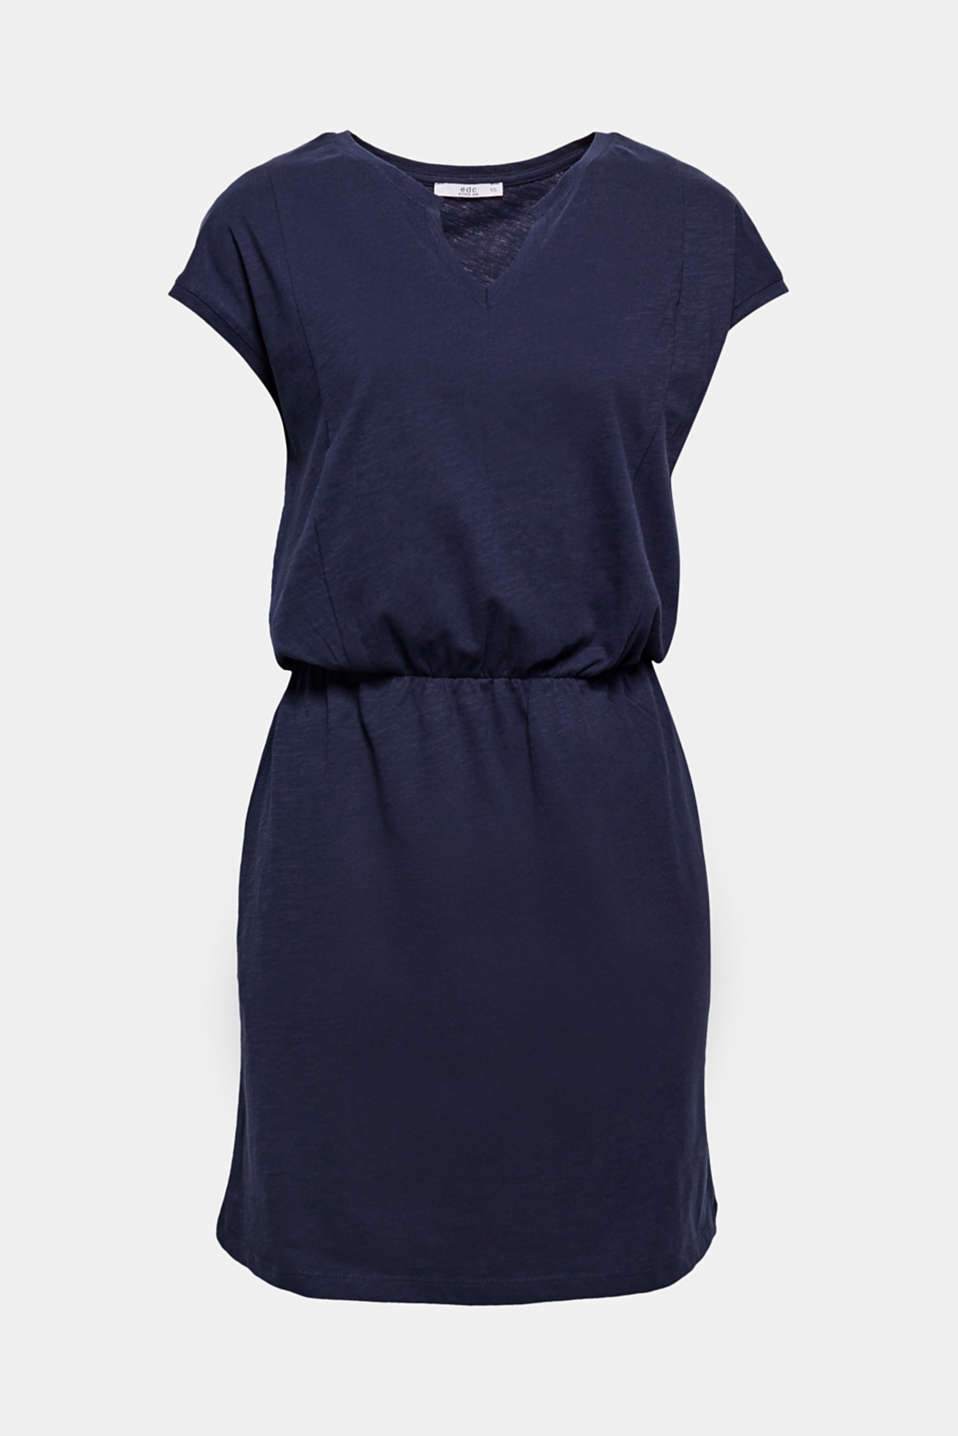 Fuses mega comfort and a laid-back look: cotton-jersey dress with an elasticated waistline and a cut-out at the round neckline.